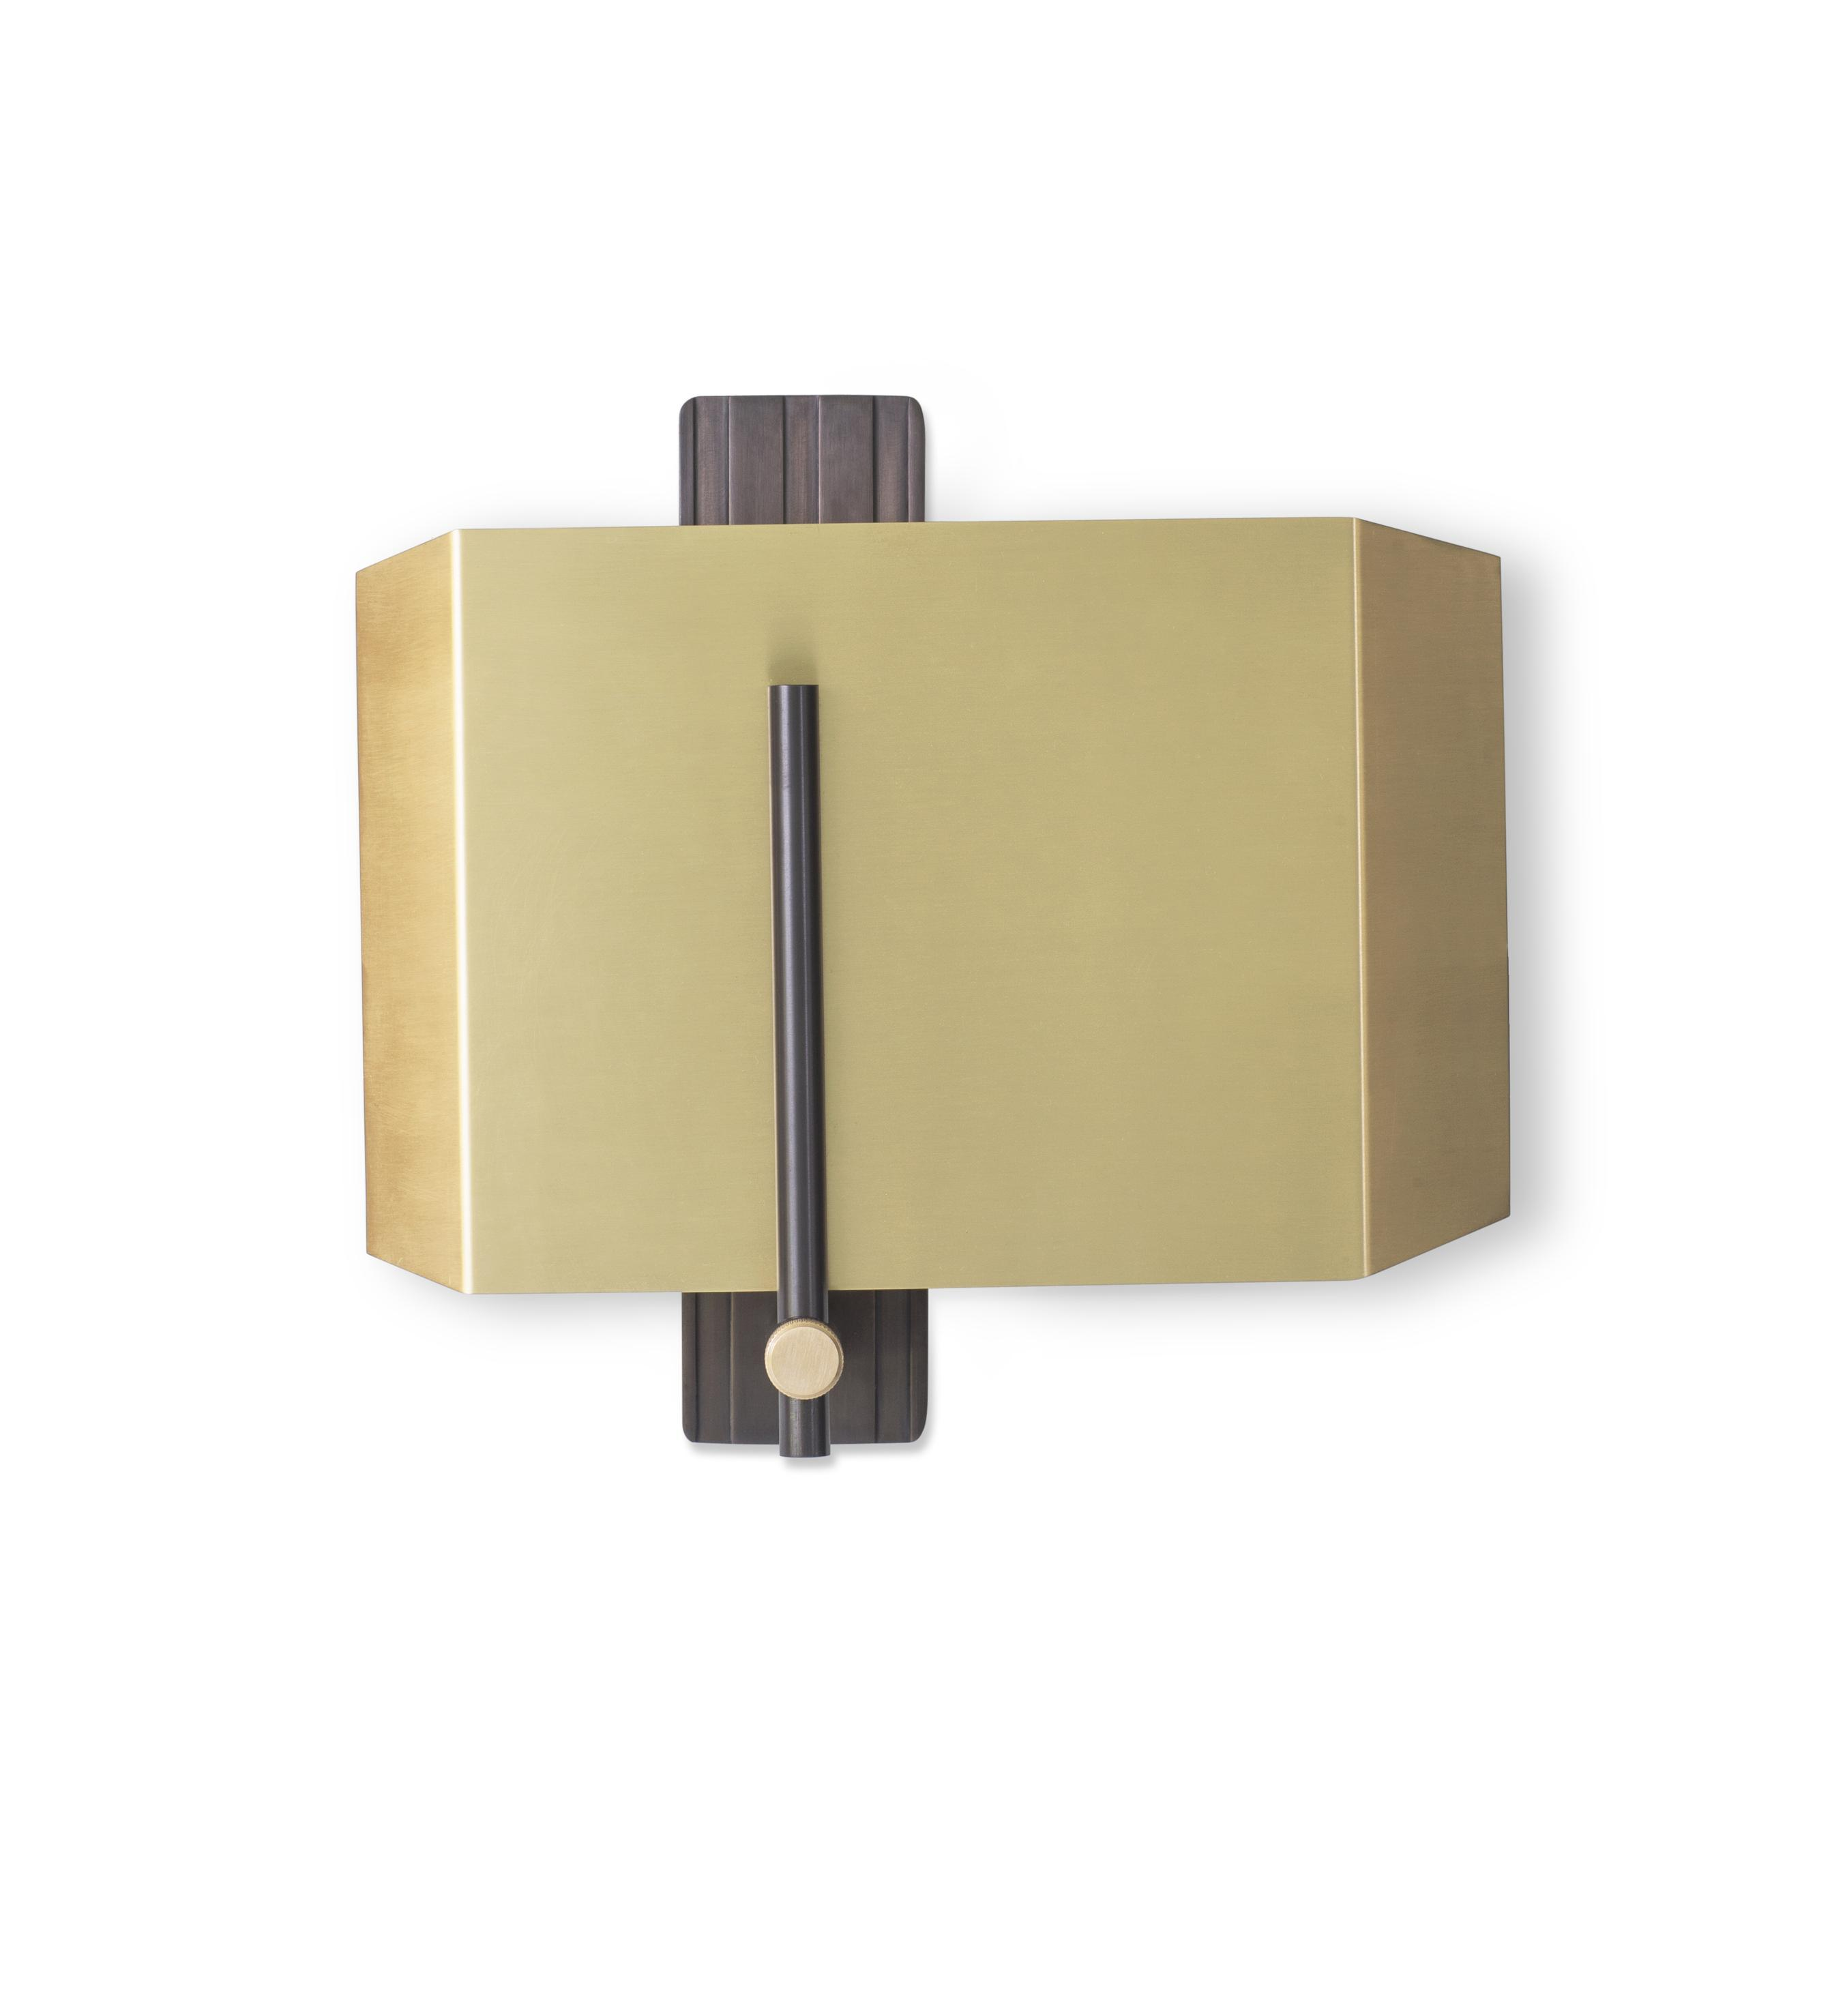 Aegis Wall Light - Machined almost entirely from solid brass or copper, this geometric light offers contrasts in materials and textures to create a bold statement.  The Aegis Wall Light is available in both right and left hand versions so it can be styled as opposing pairs.    | Matter of Stuff